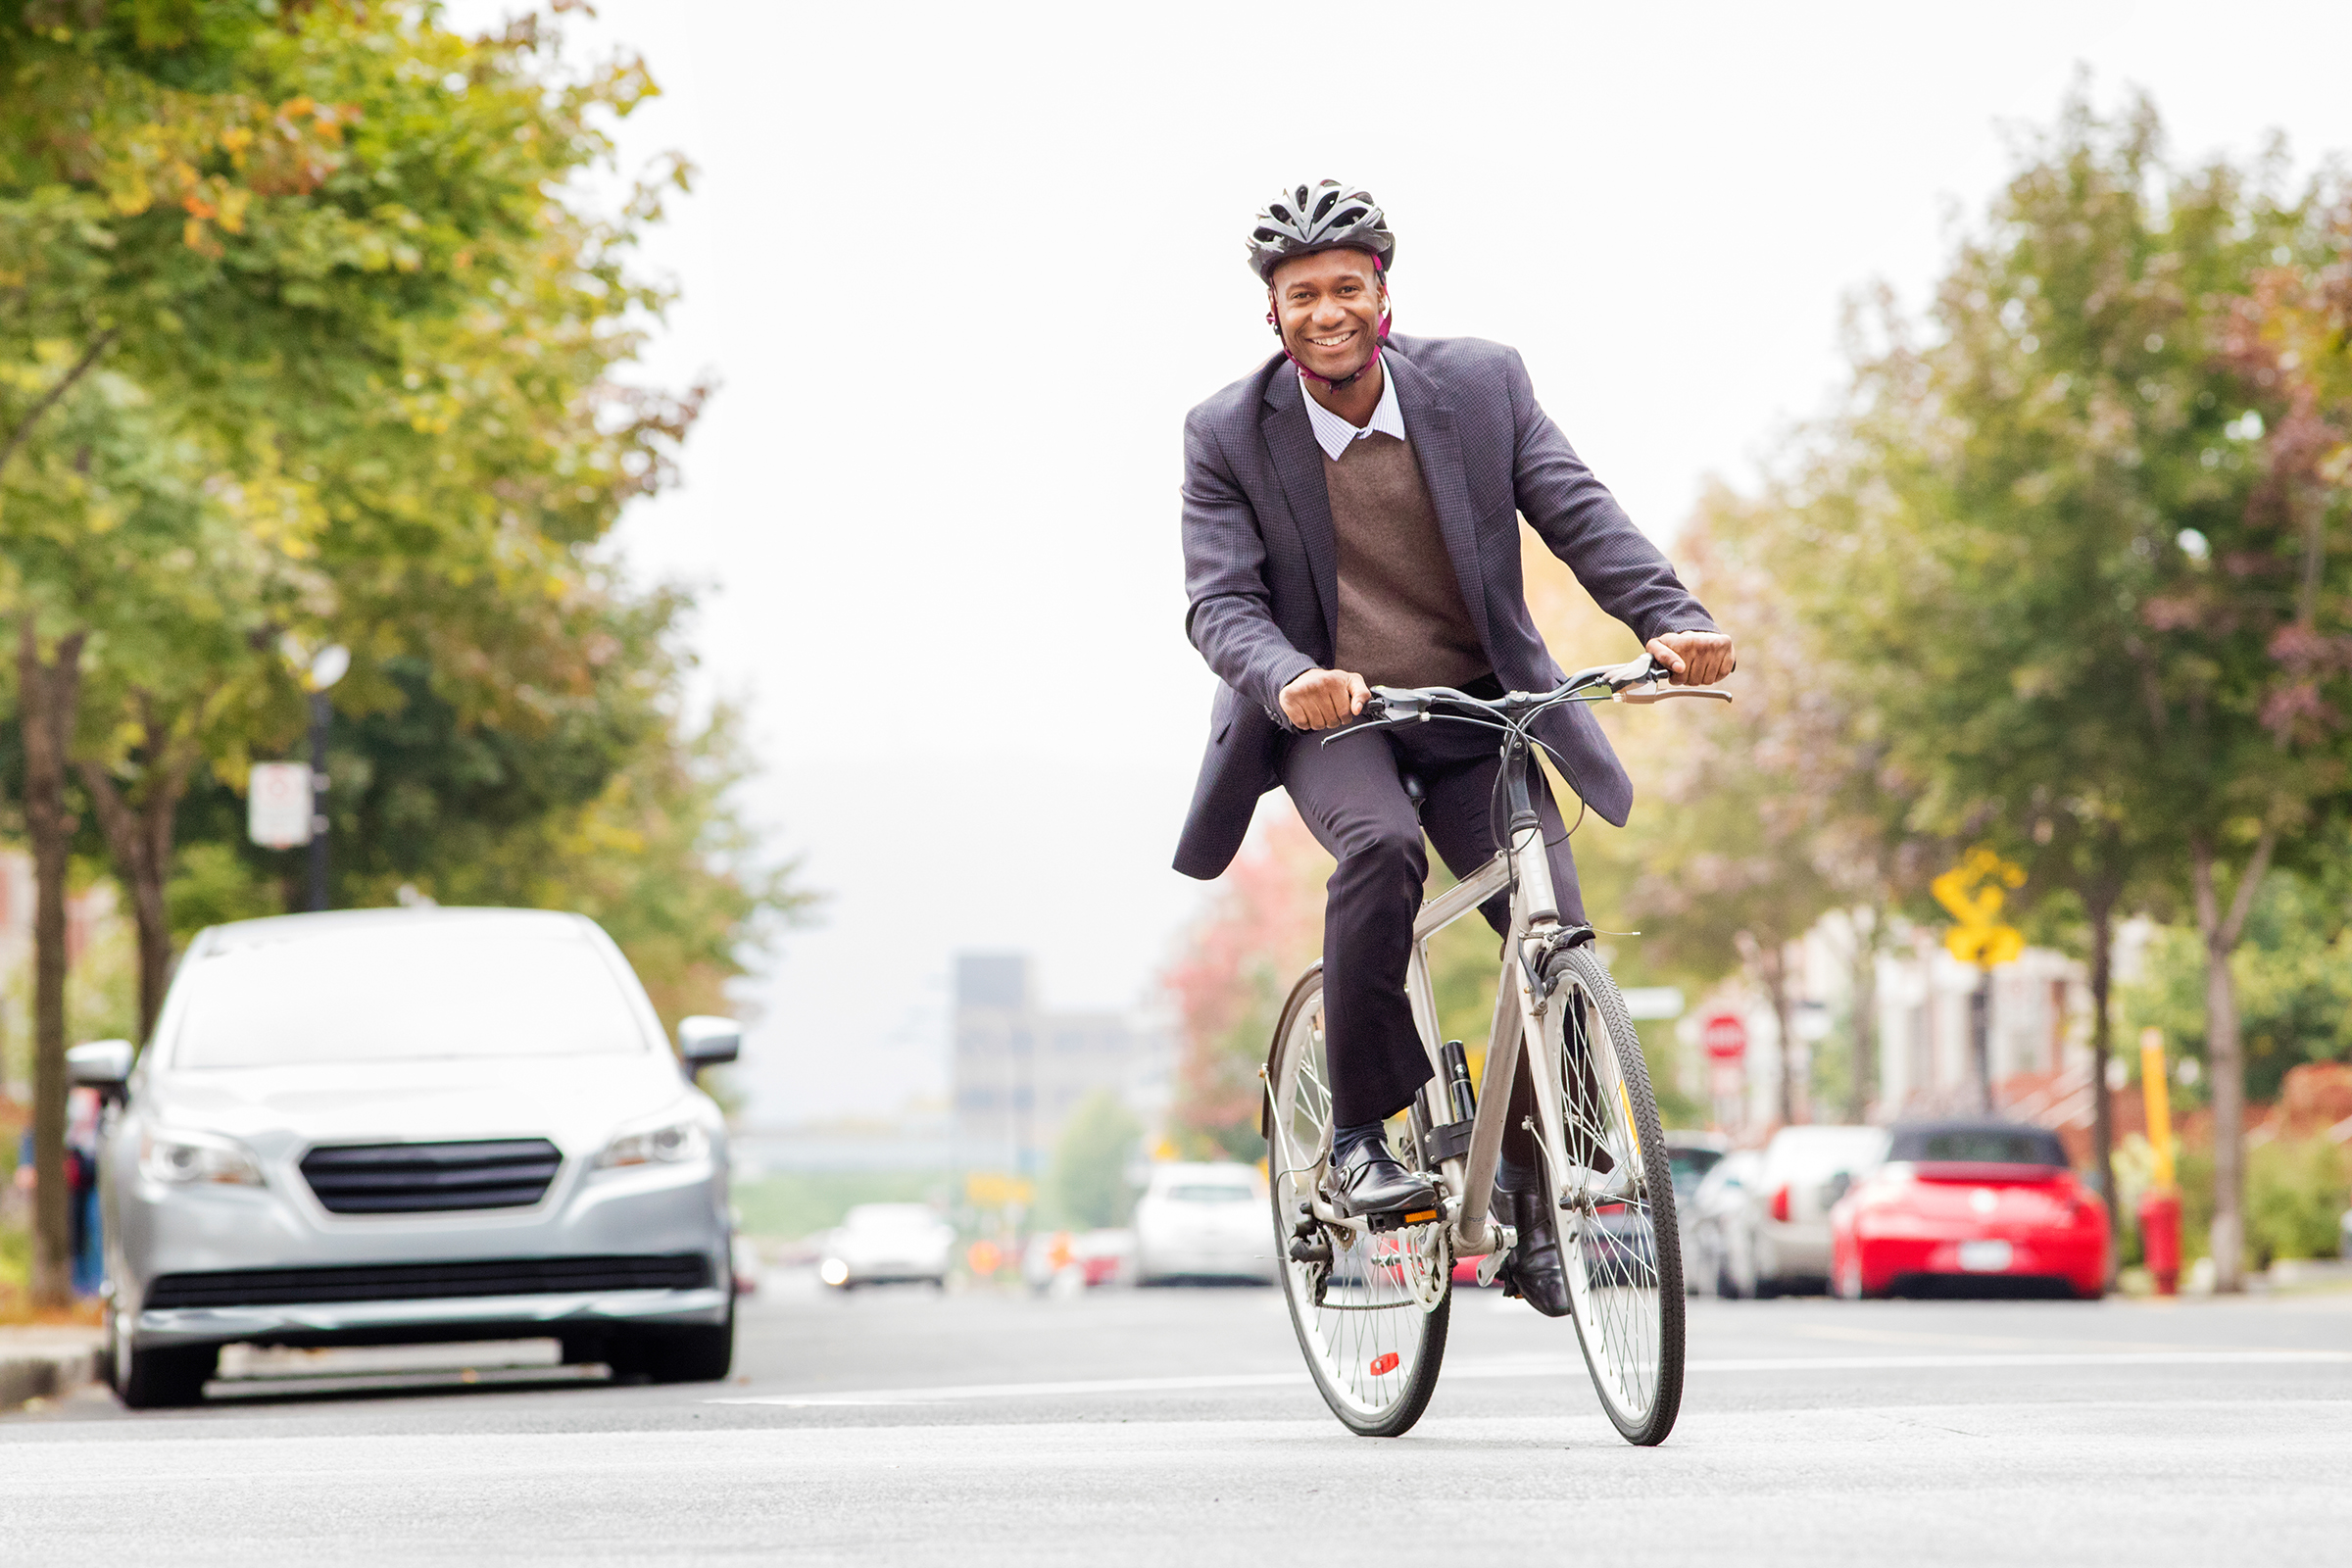 Man commuting to work by bicycle